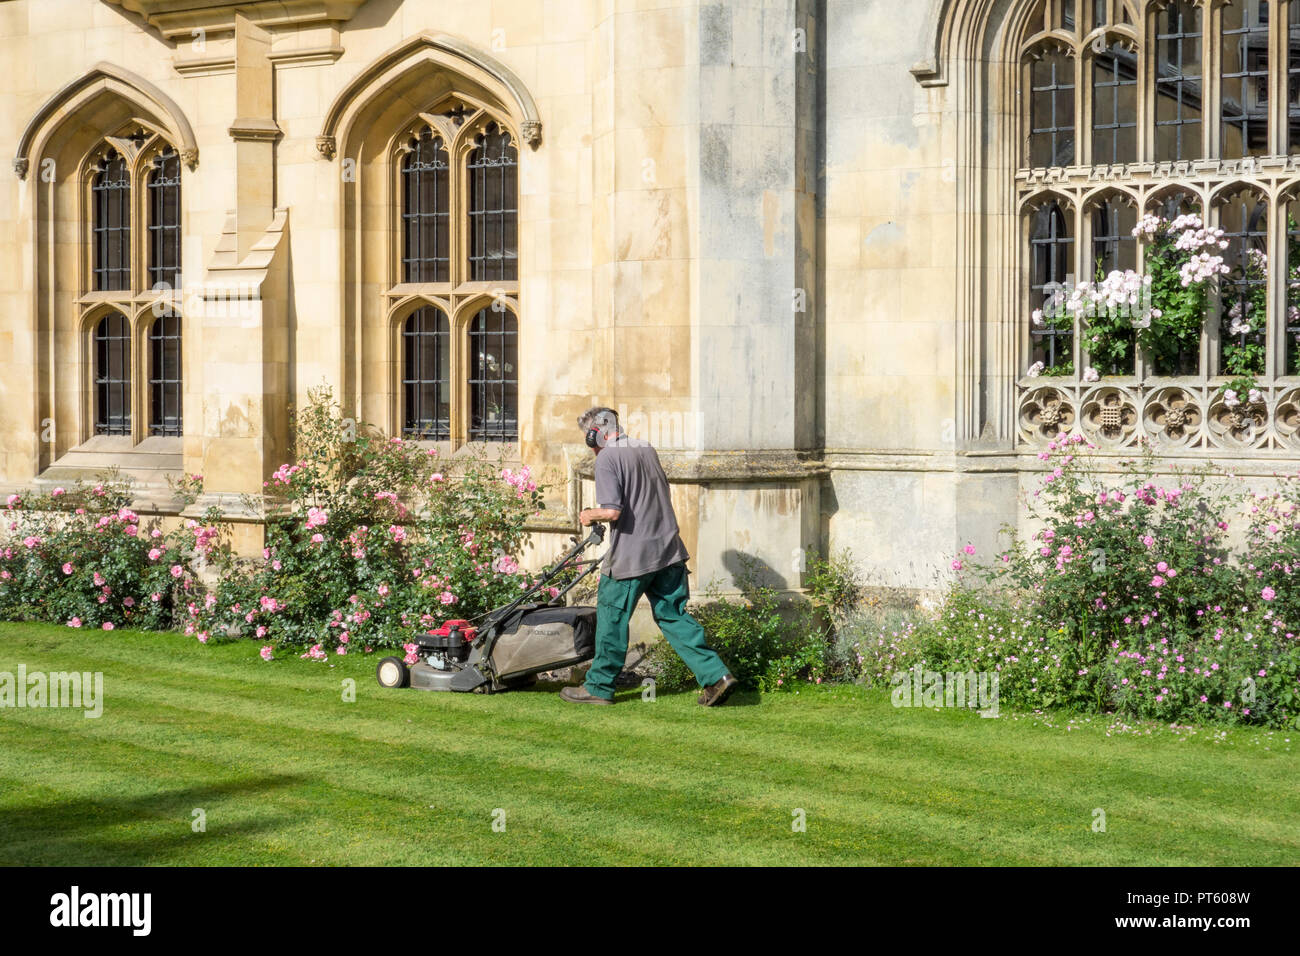 Gardner mowing lawn outside King's College, University of Cambridge, UK - Stock Image